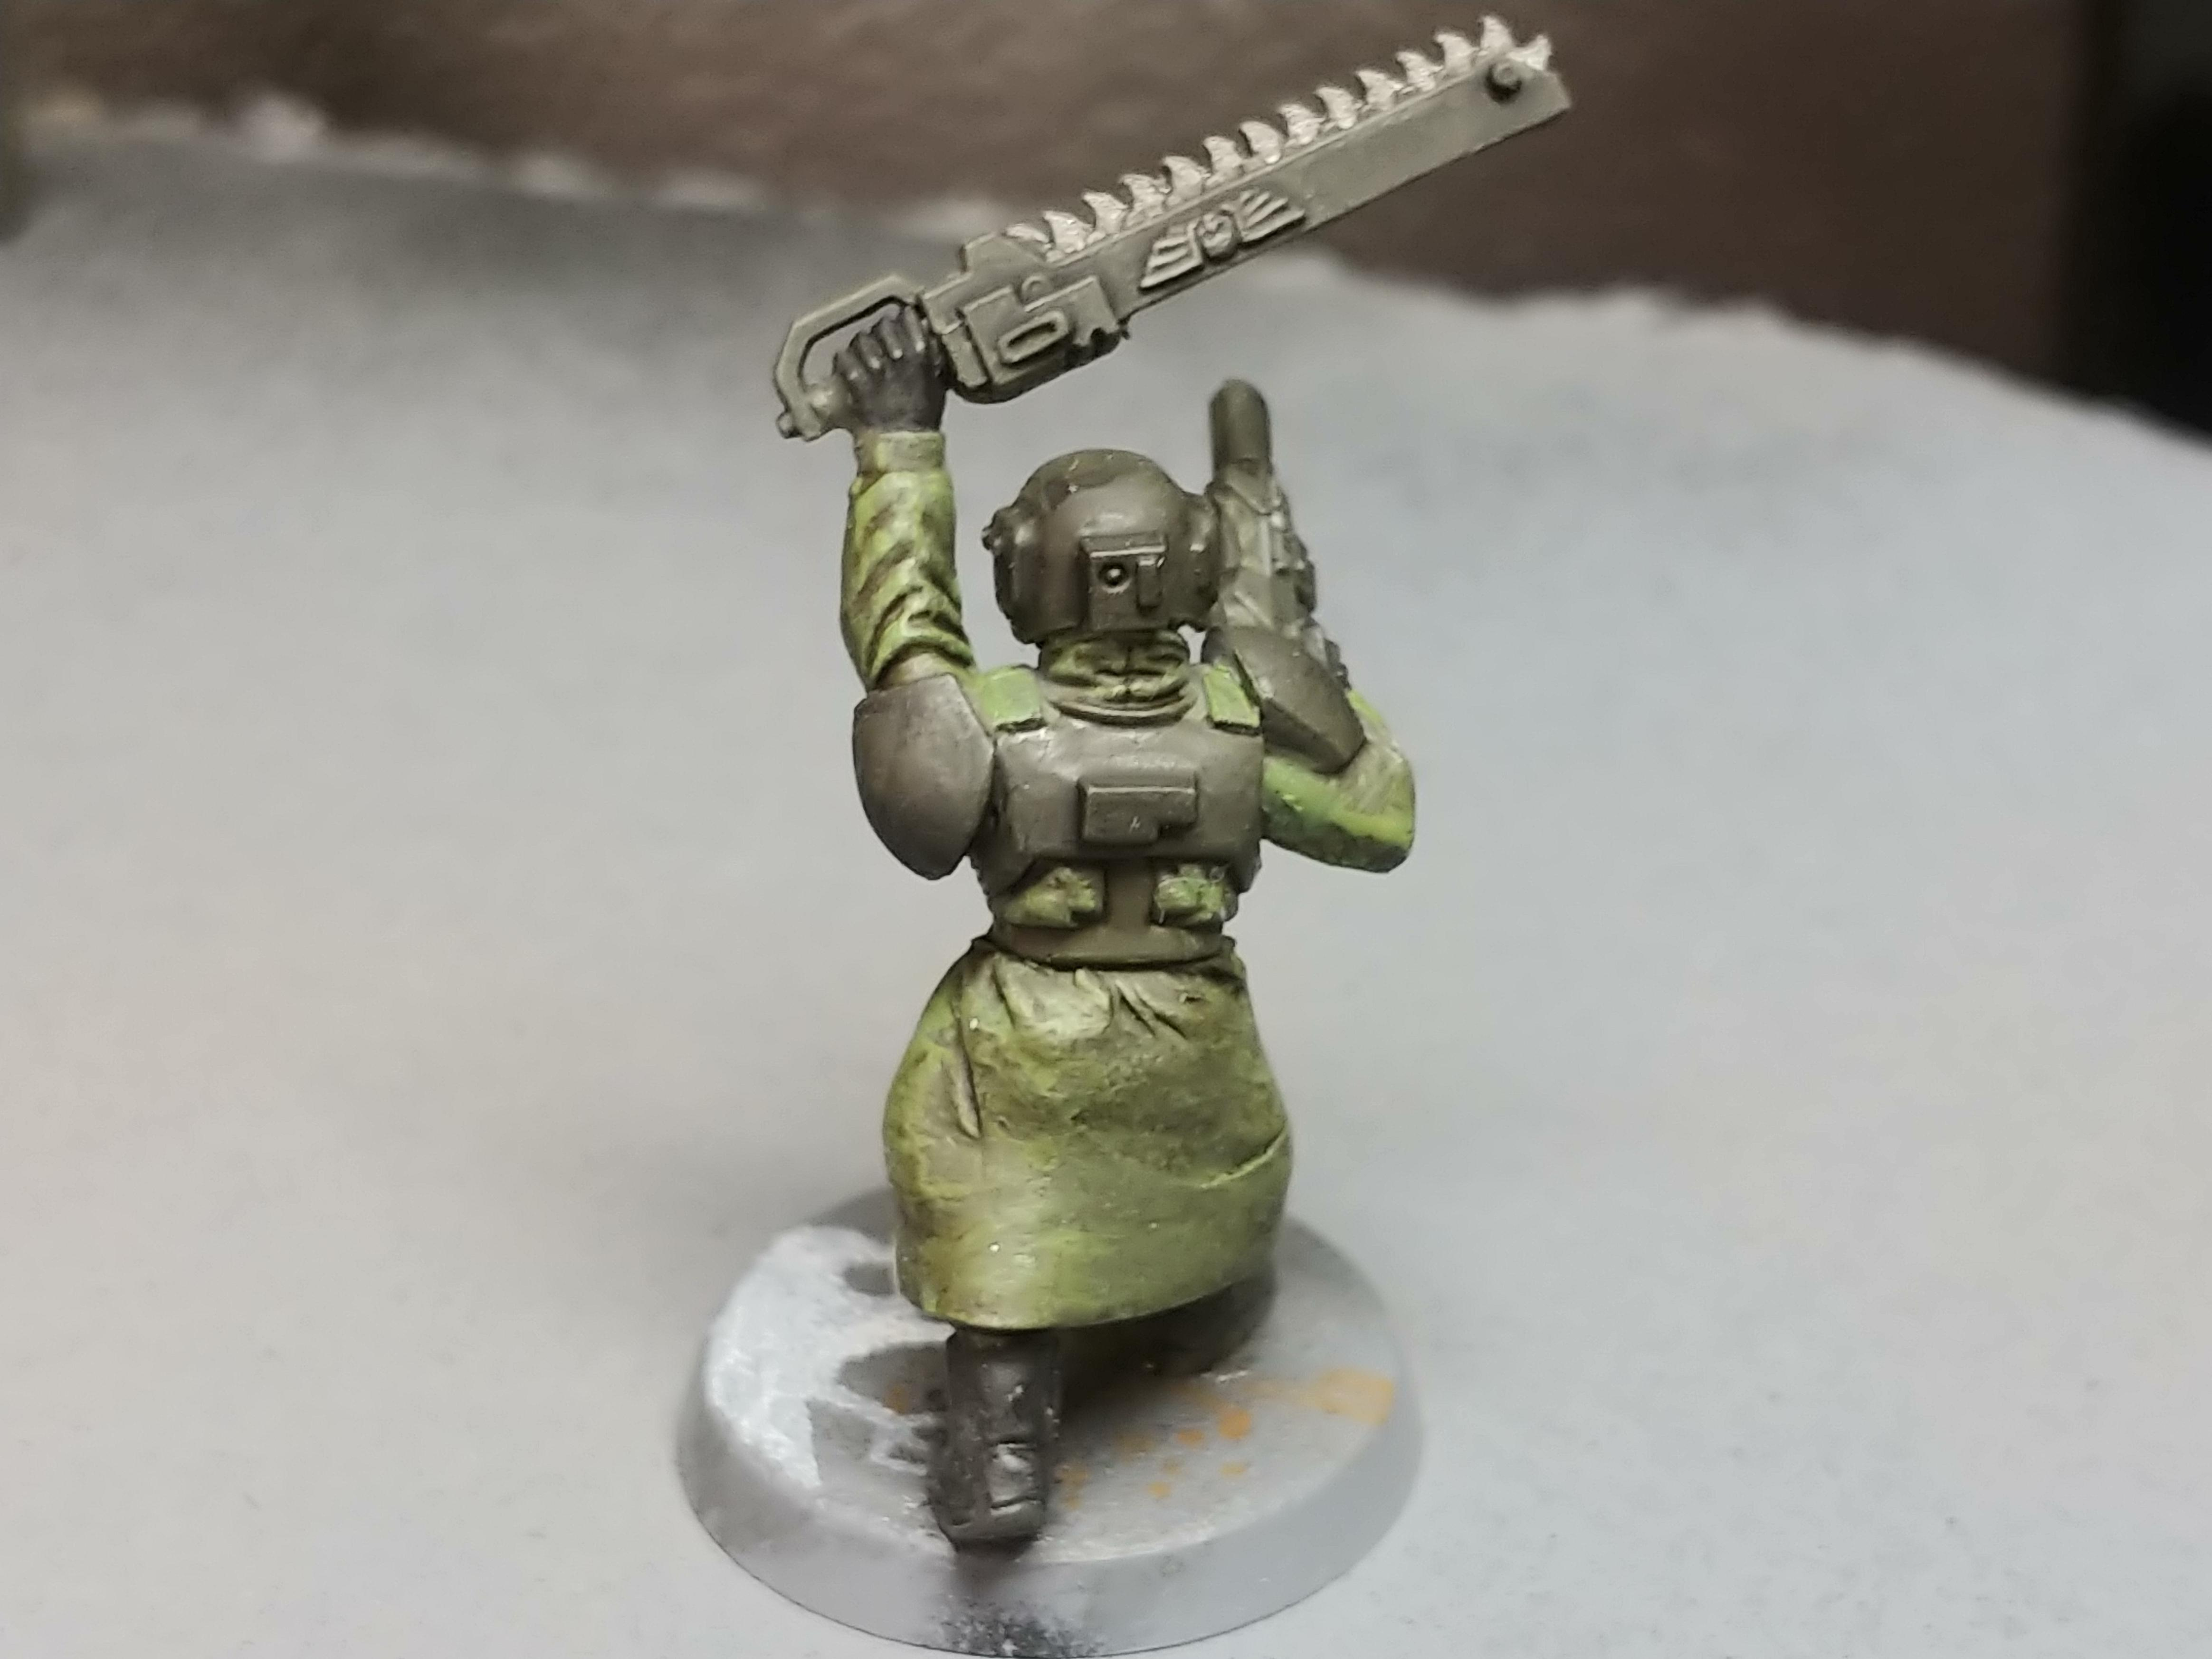 508, 508th, Based, Bayonet, Coat, Conversion, Converting, Guard, Guards, Guardsmen, Hammer, Hammerhead, Head, Imperial, Imperial Guard, Infantry, Kitbash, Lasgun, Longcoat, Trench, Troops, Urban